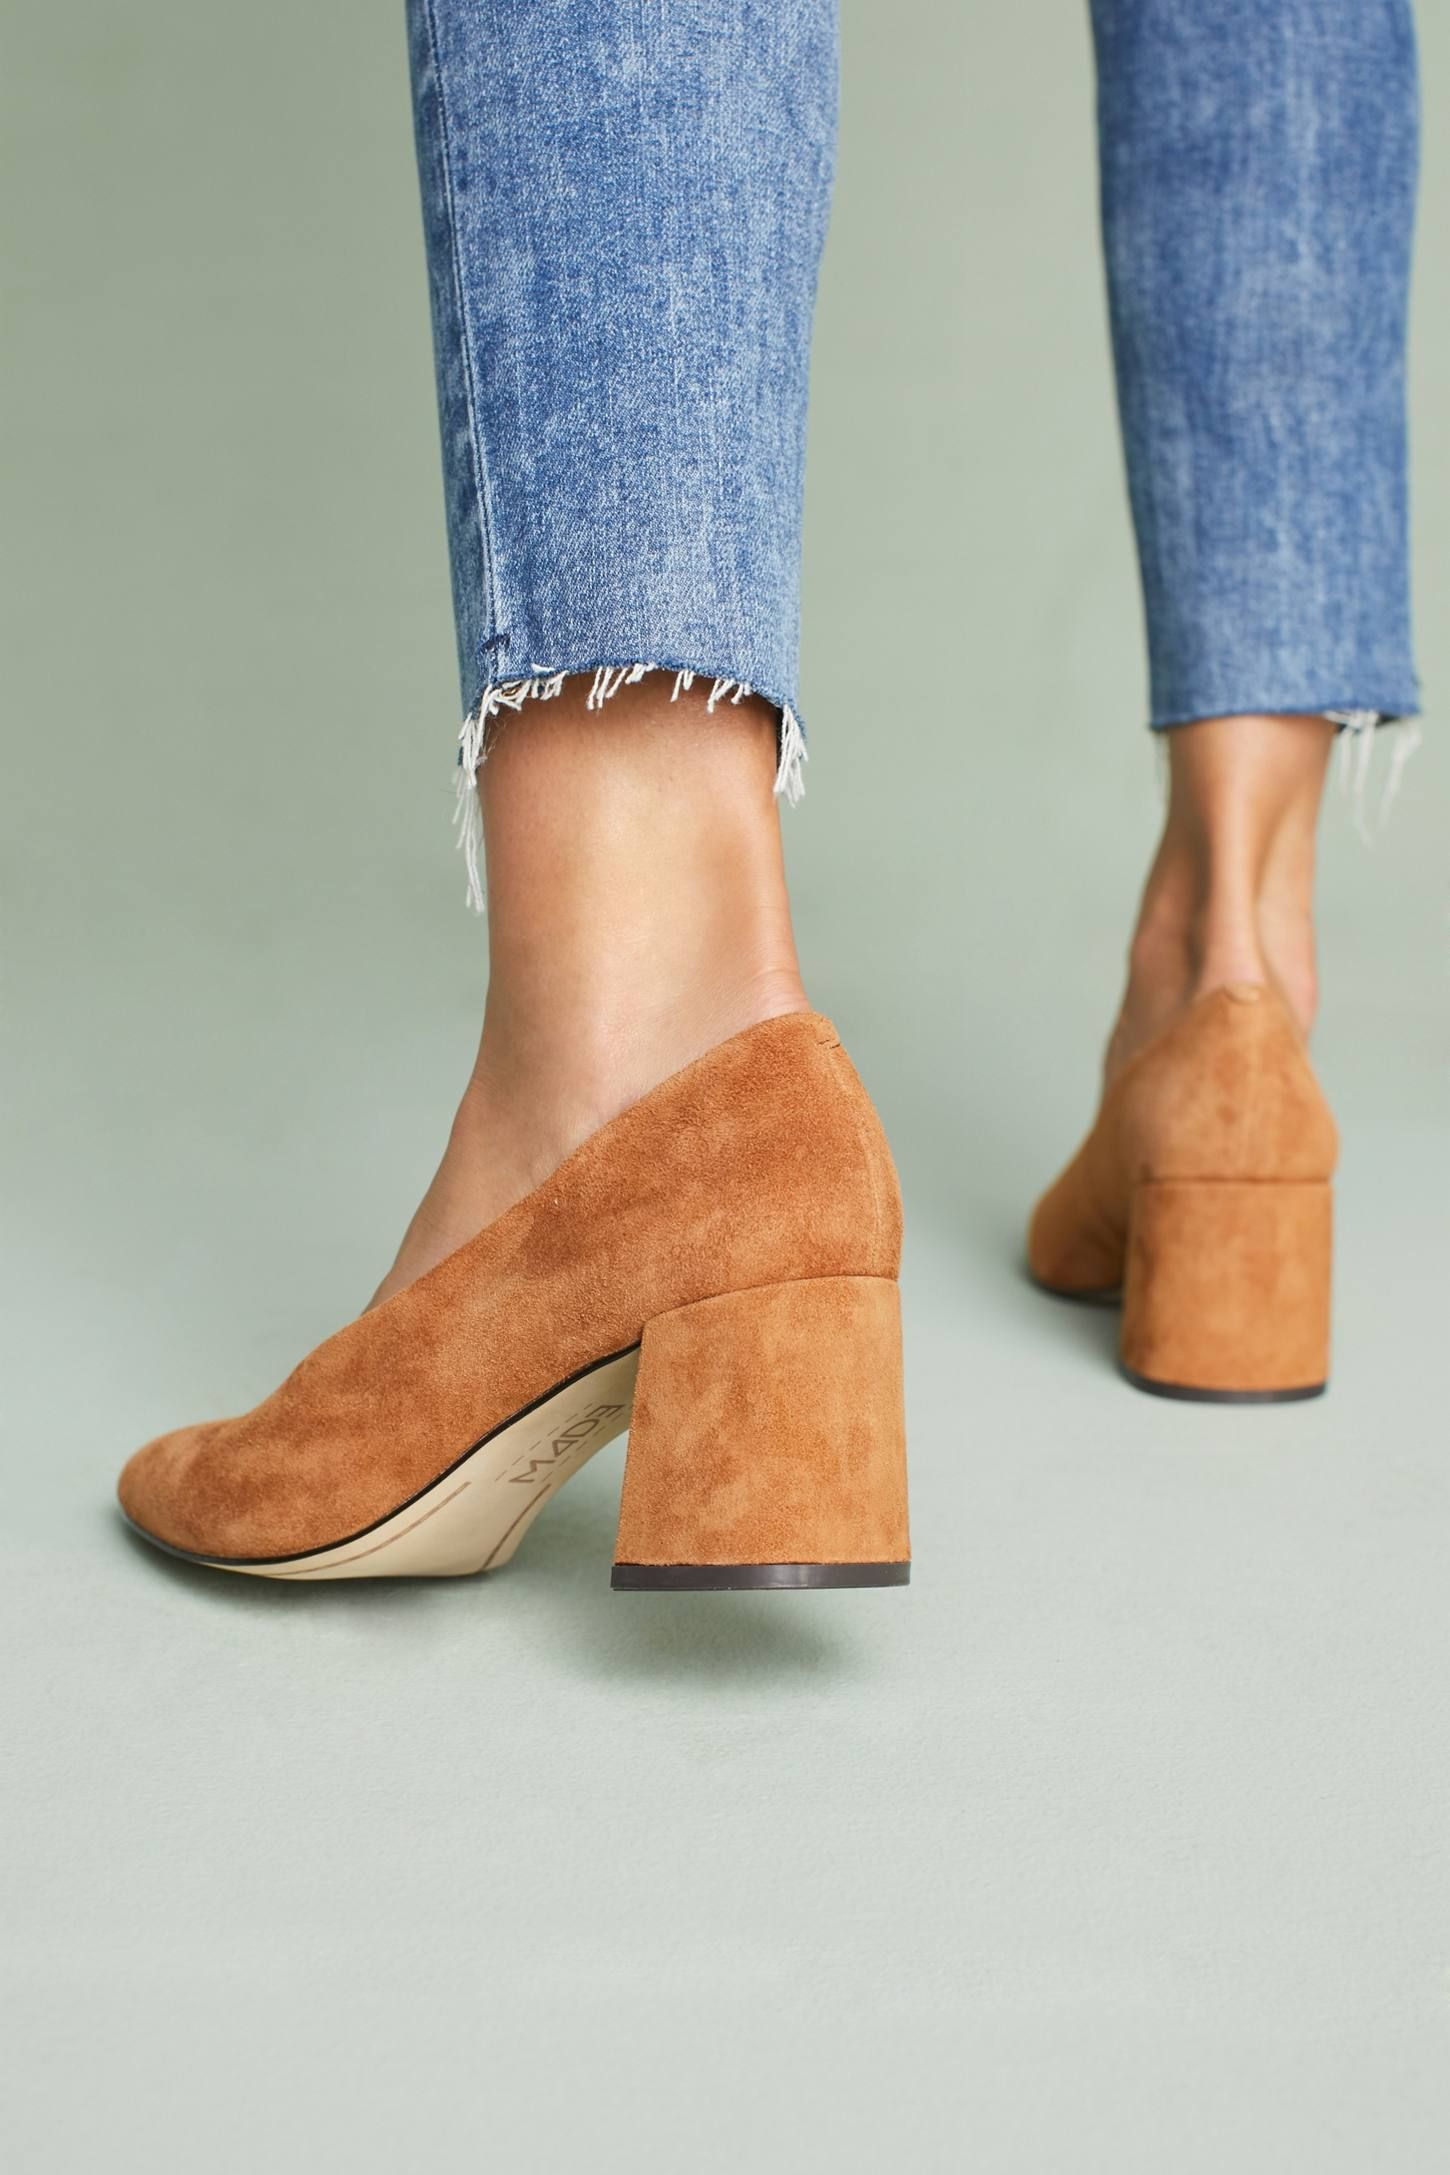 74ce10ce3eb3 Shop the M4D3 Helen Block Heels and more Anthropologie at Anthropologie  today. Read customer reviews